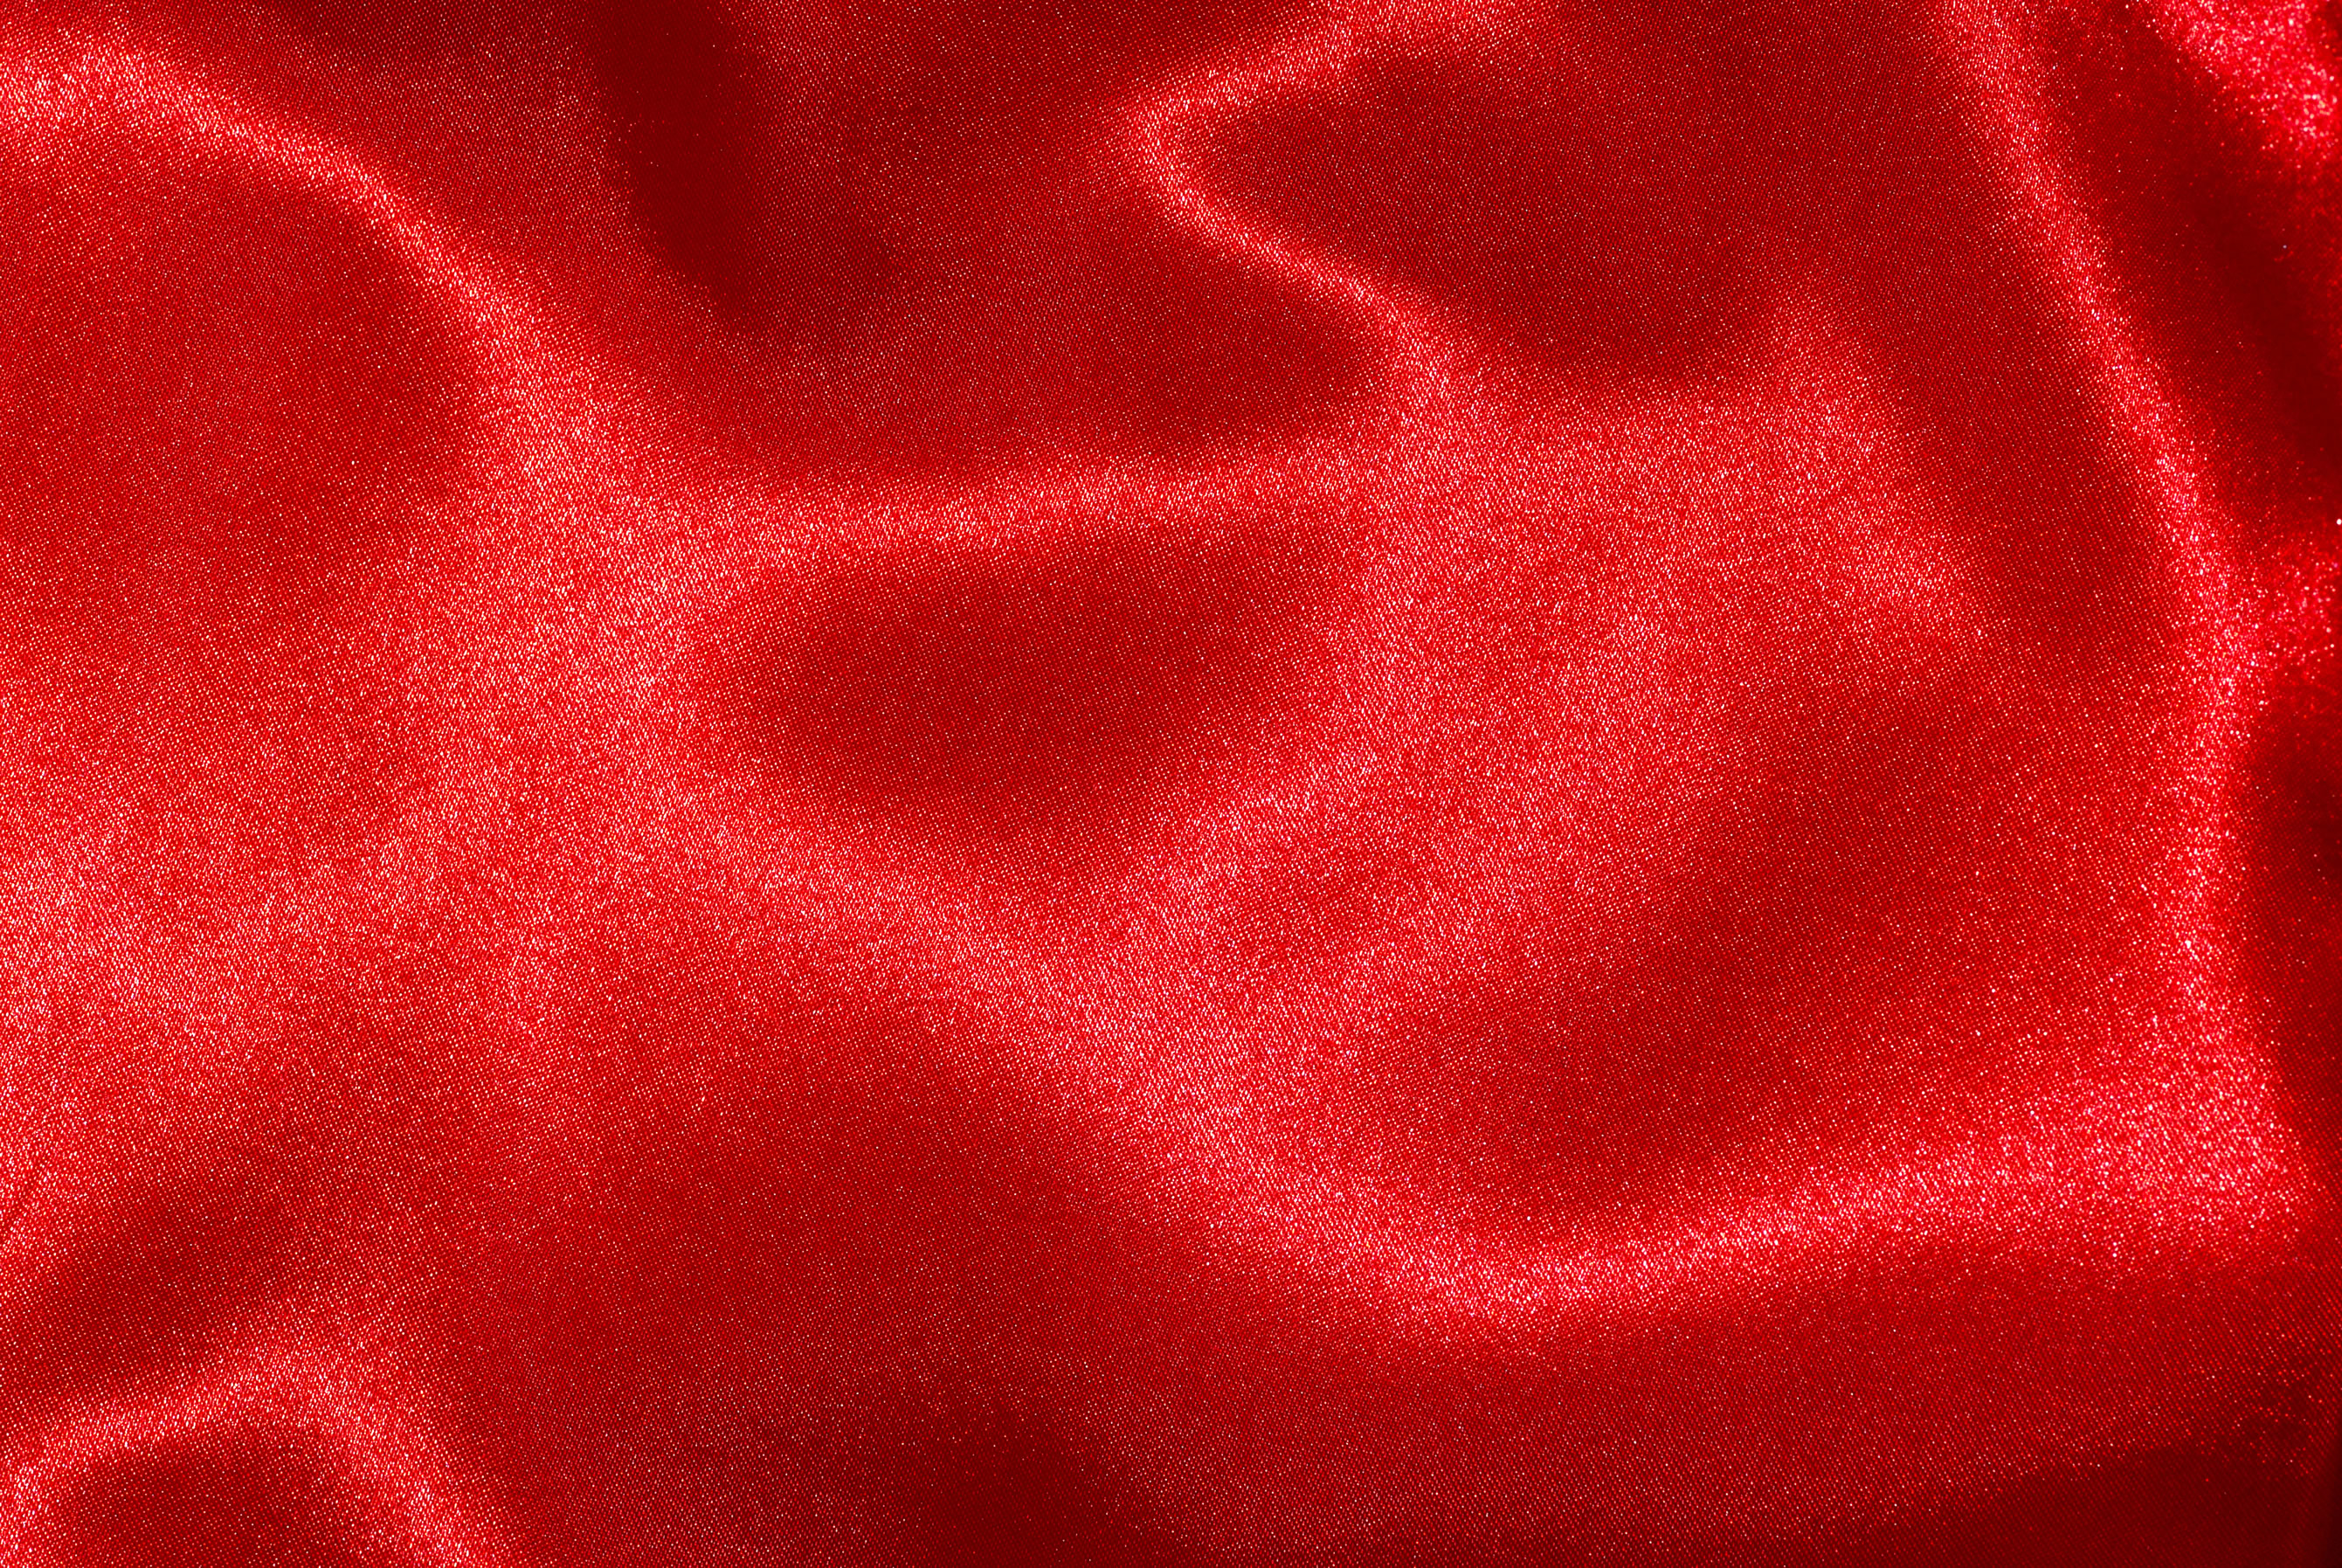 Download texture image: red velvet background texture, red velvet ...